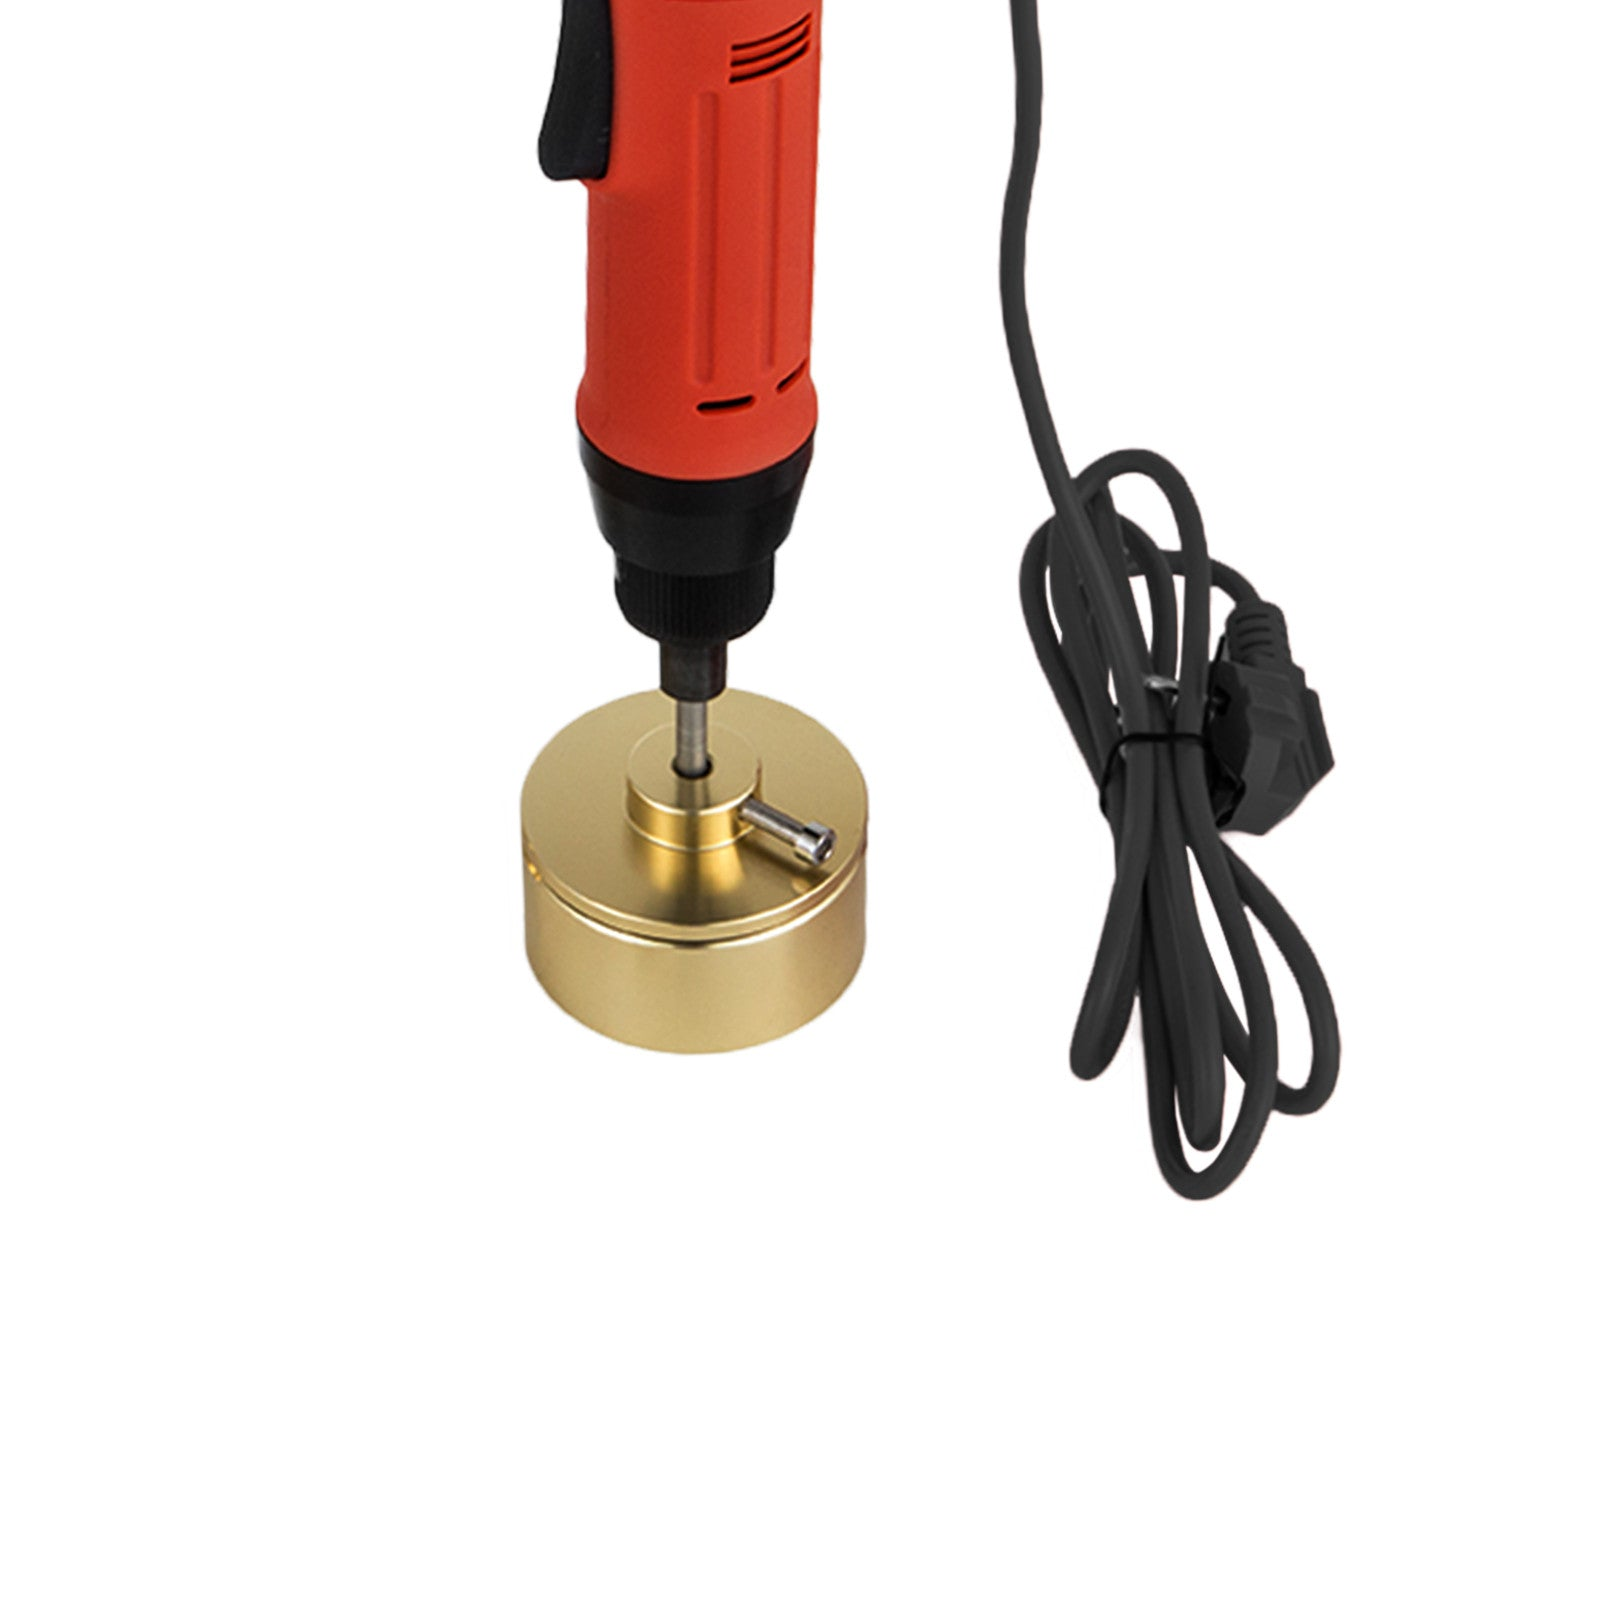 Manual Electric Capping Screw Capper Hand-held Electric Bottle Sealing Machine